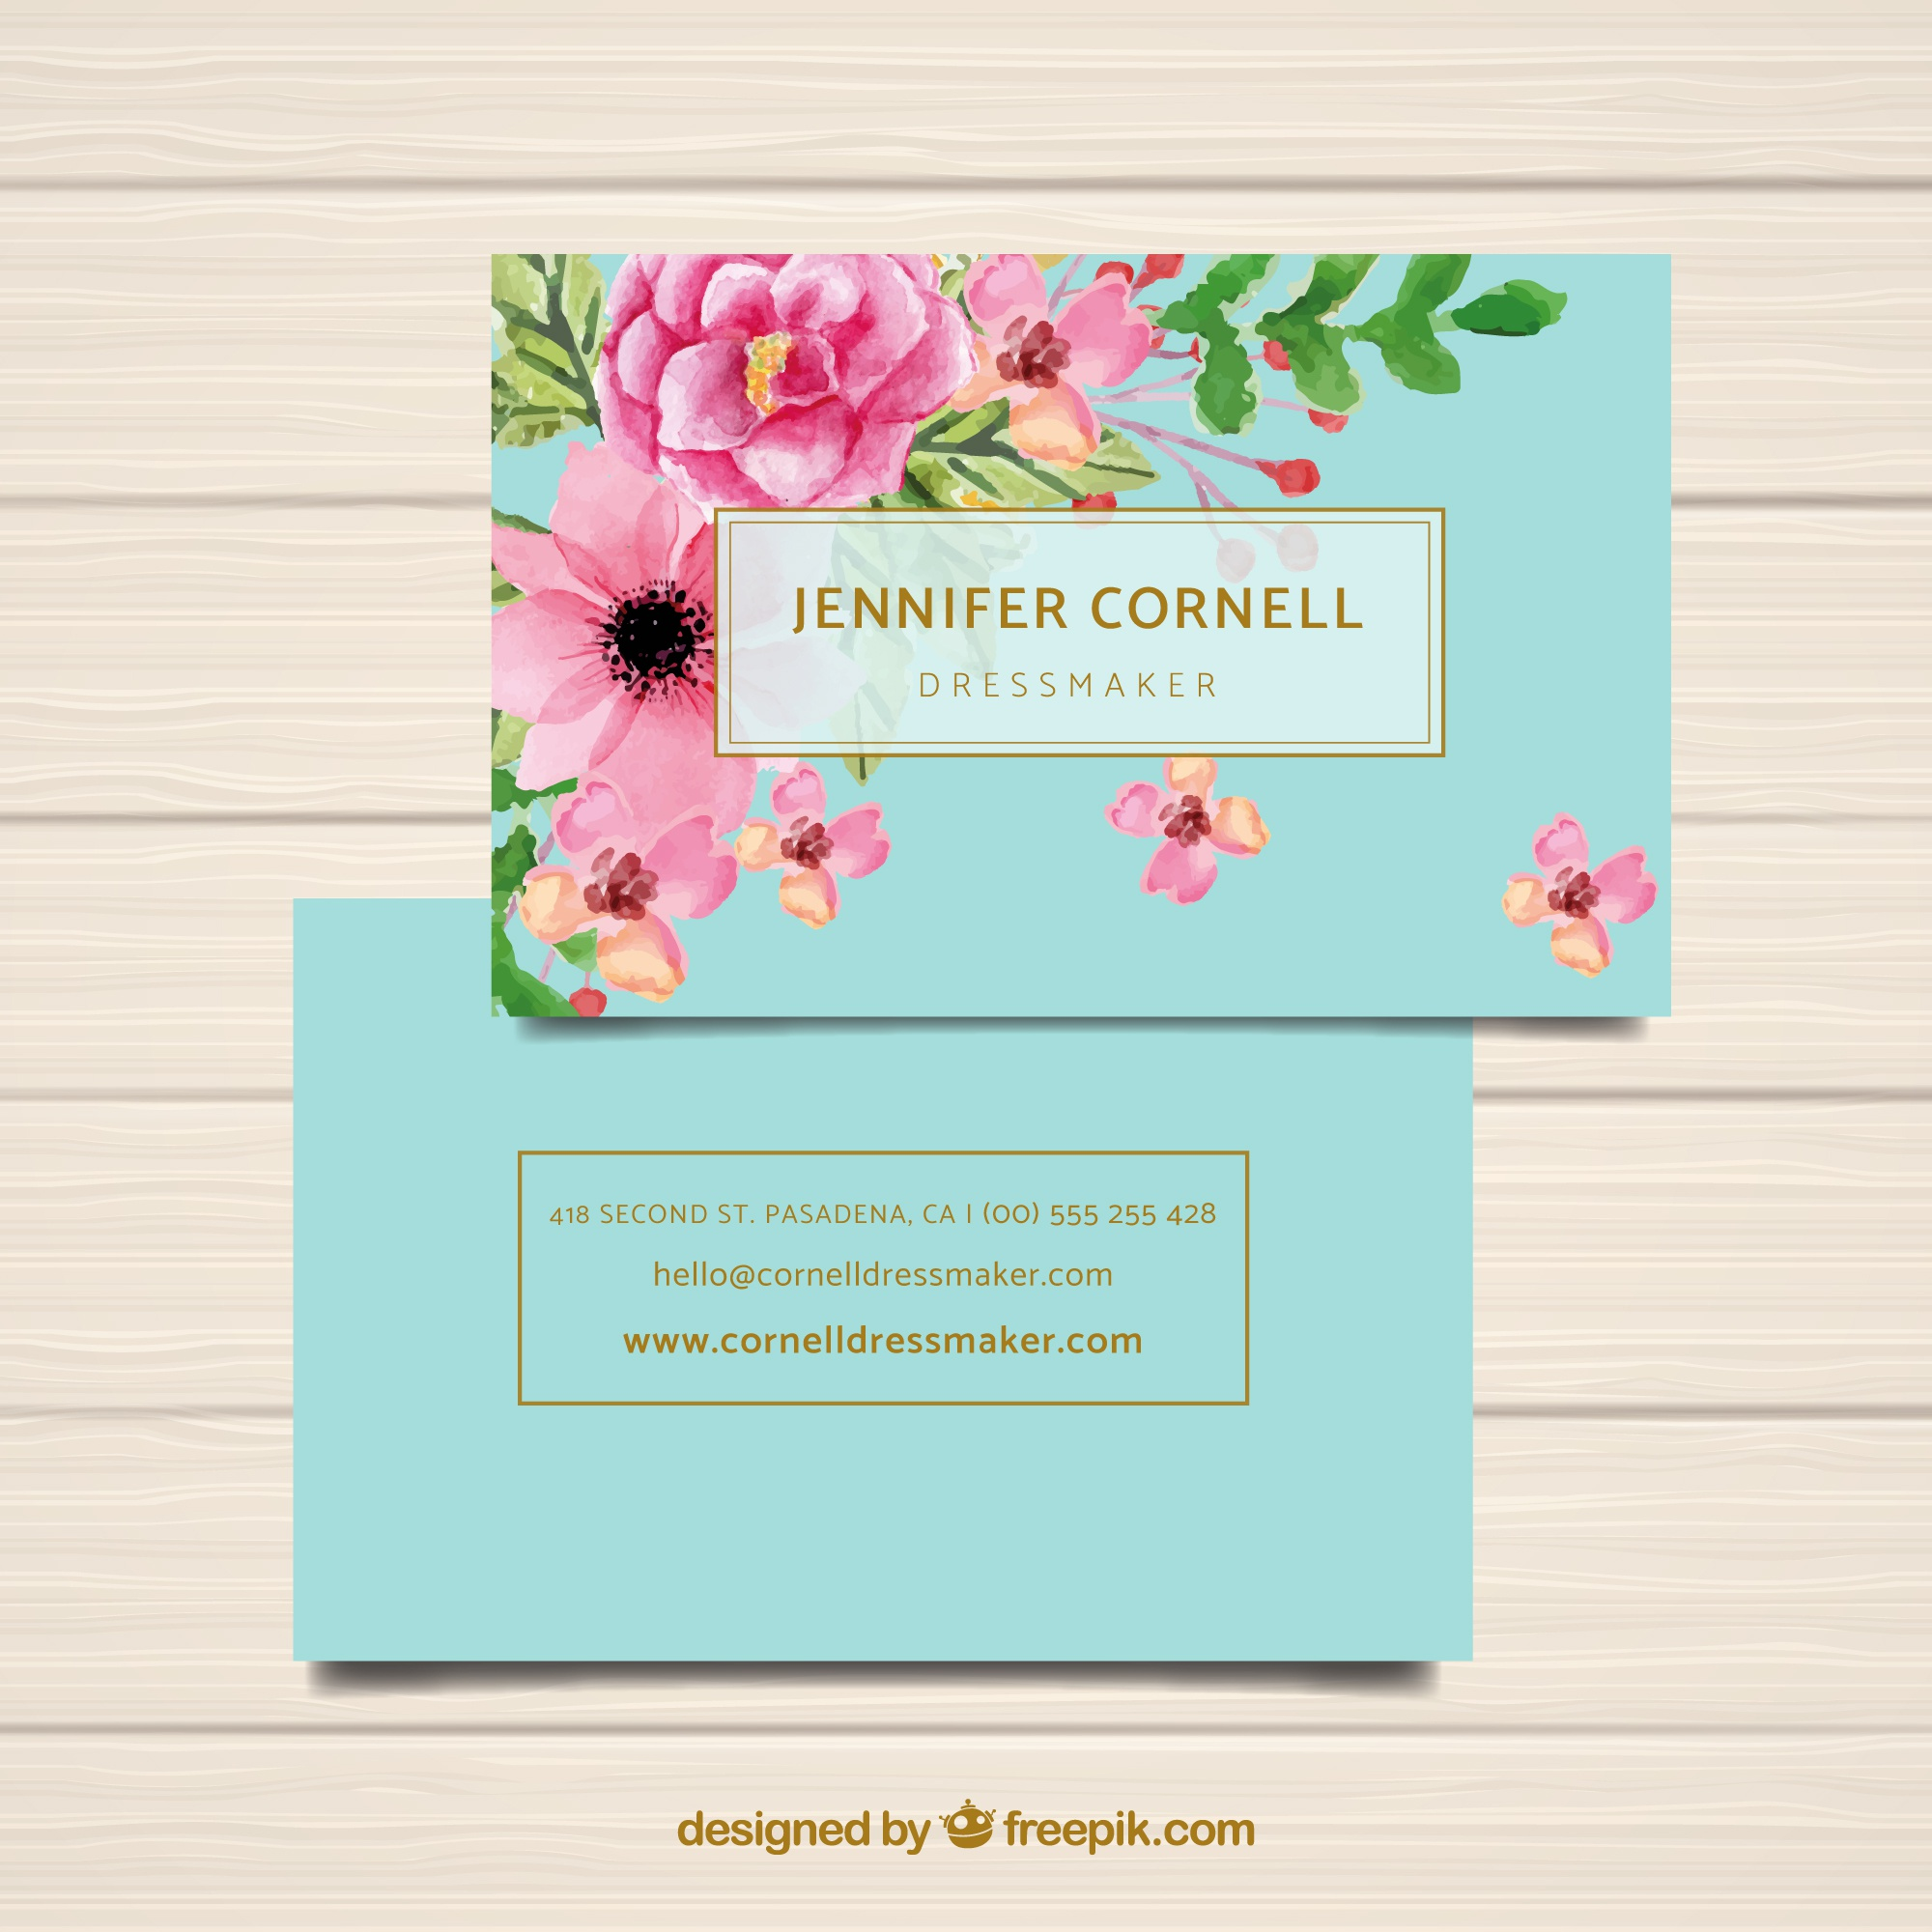 Watercolor business card template with flowers